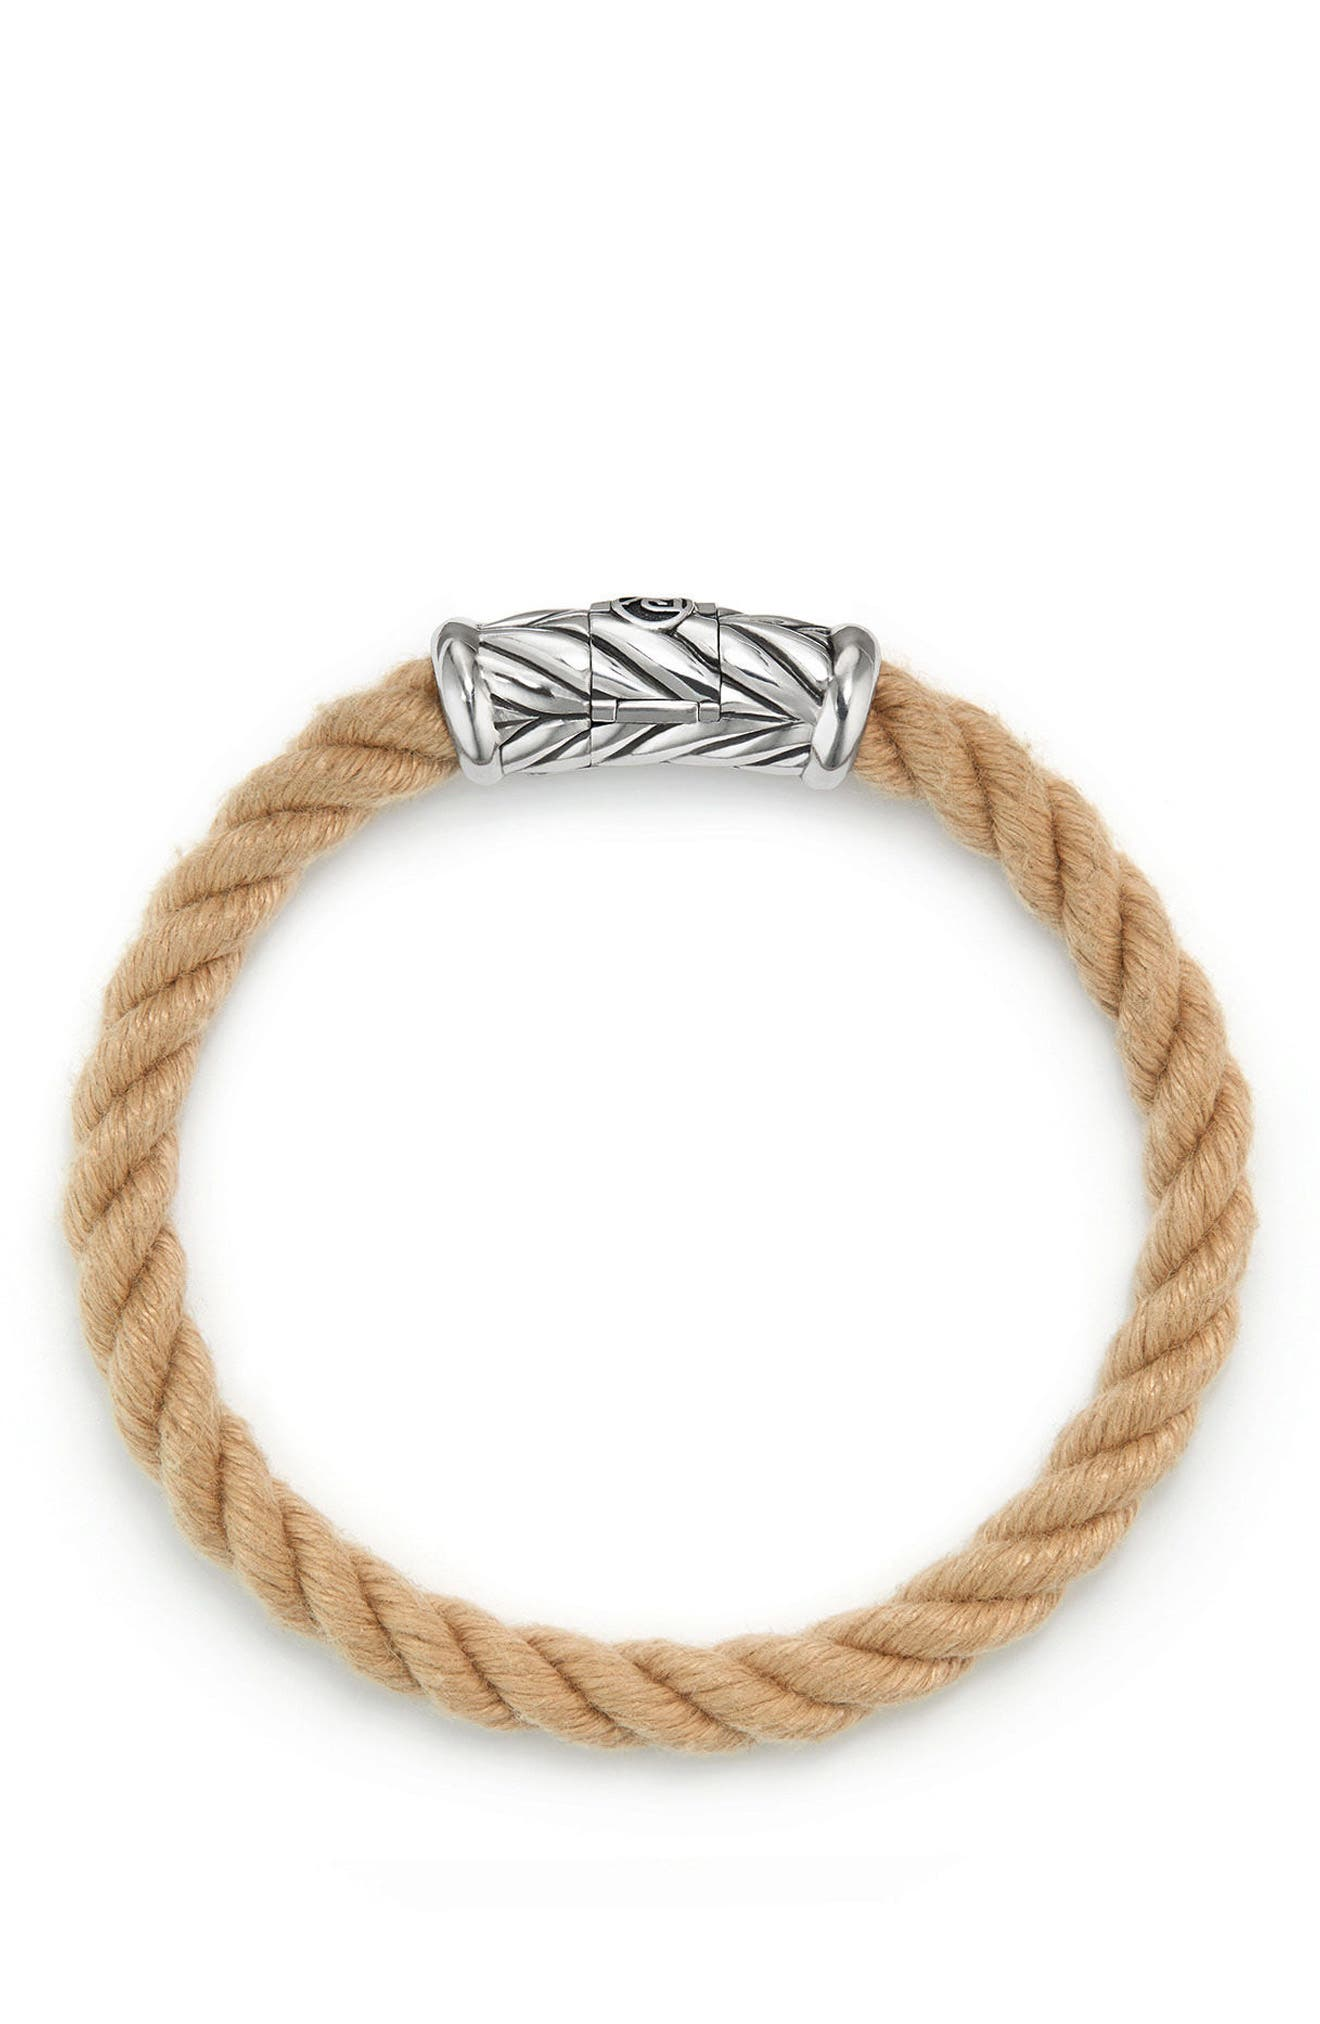 Maritime Rope Bracelet,                             Alternate thumbnail 3, color,                             SILVER